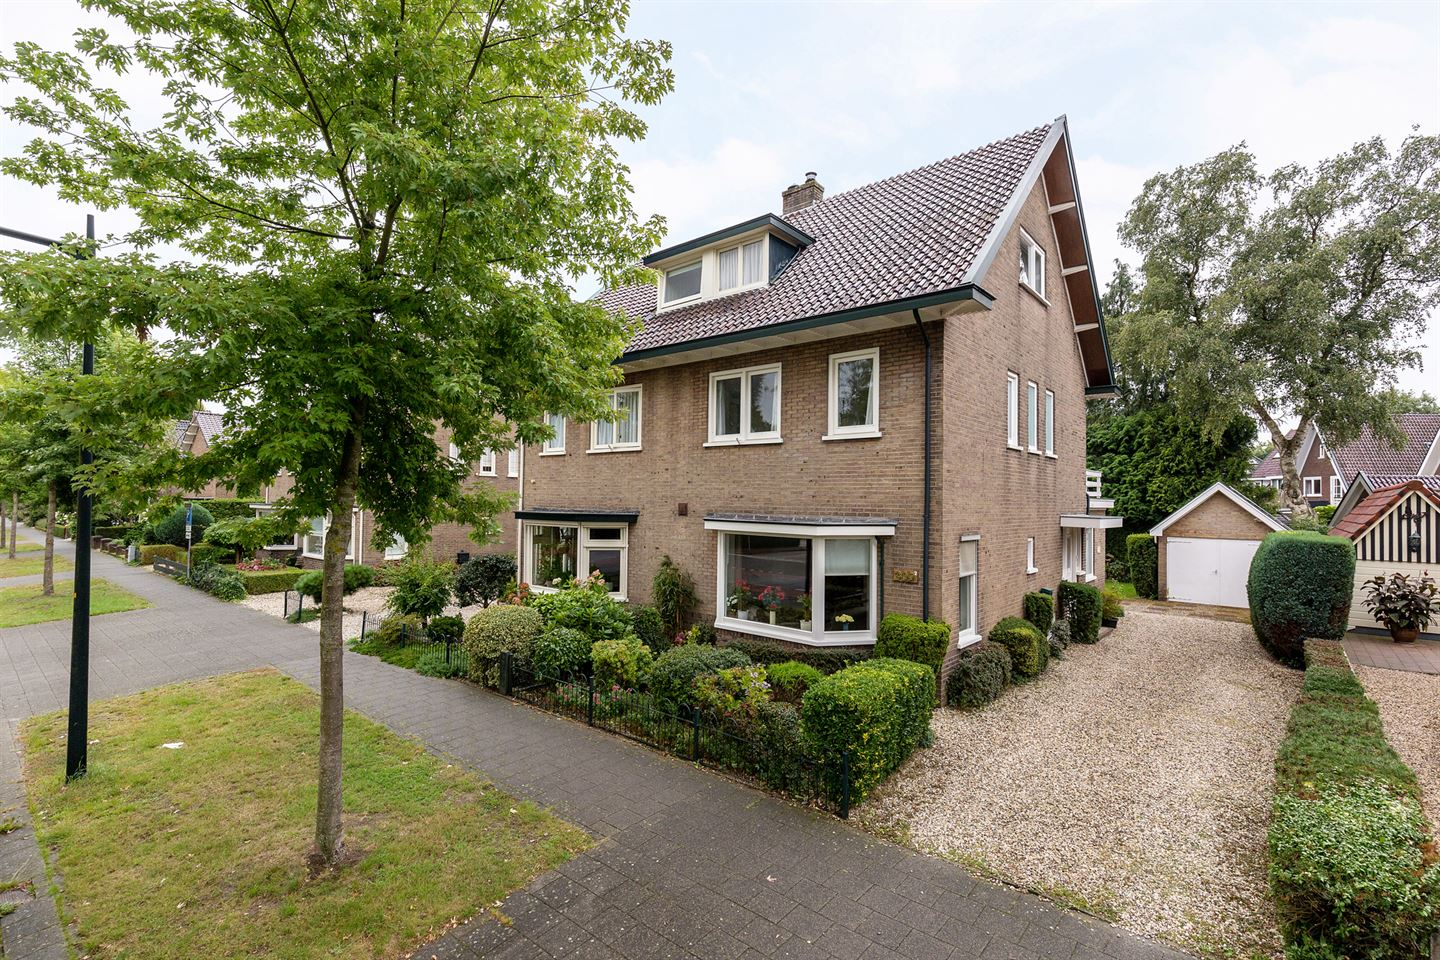 View photo 1 of Asselsestraat 309 2